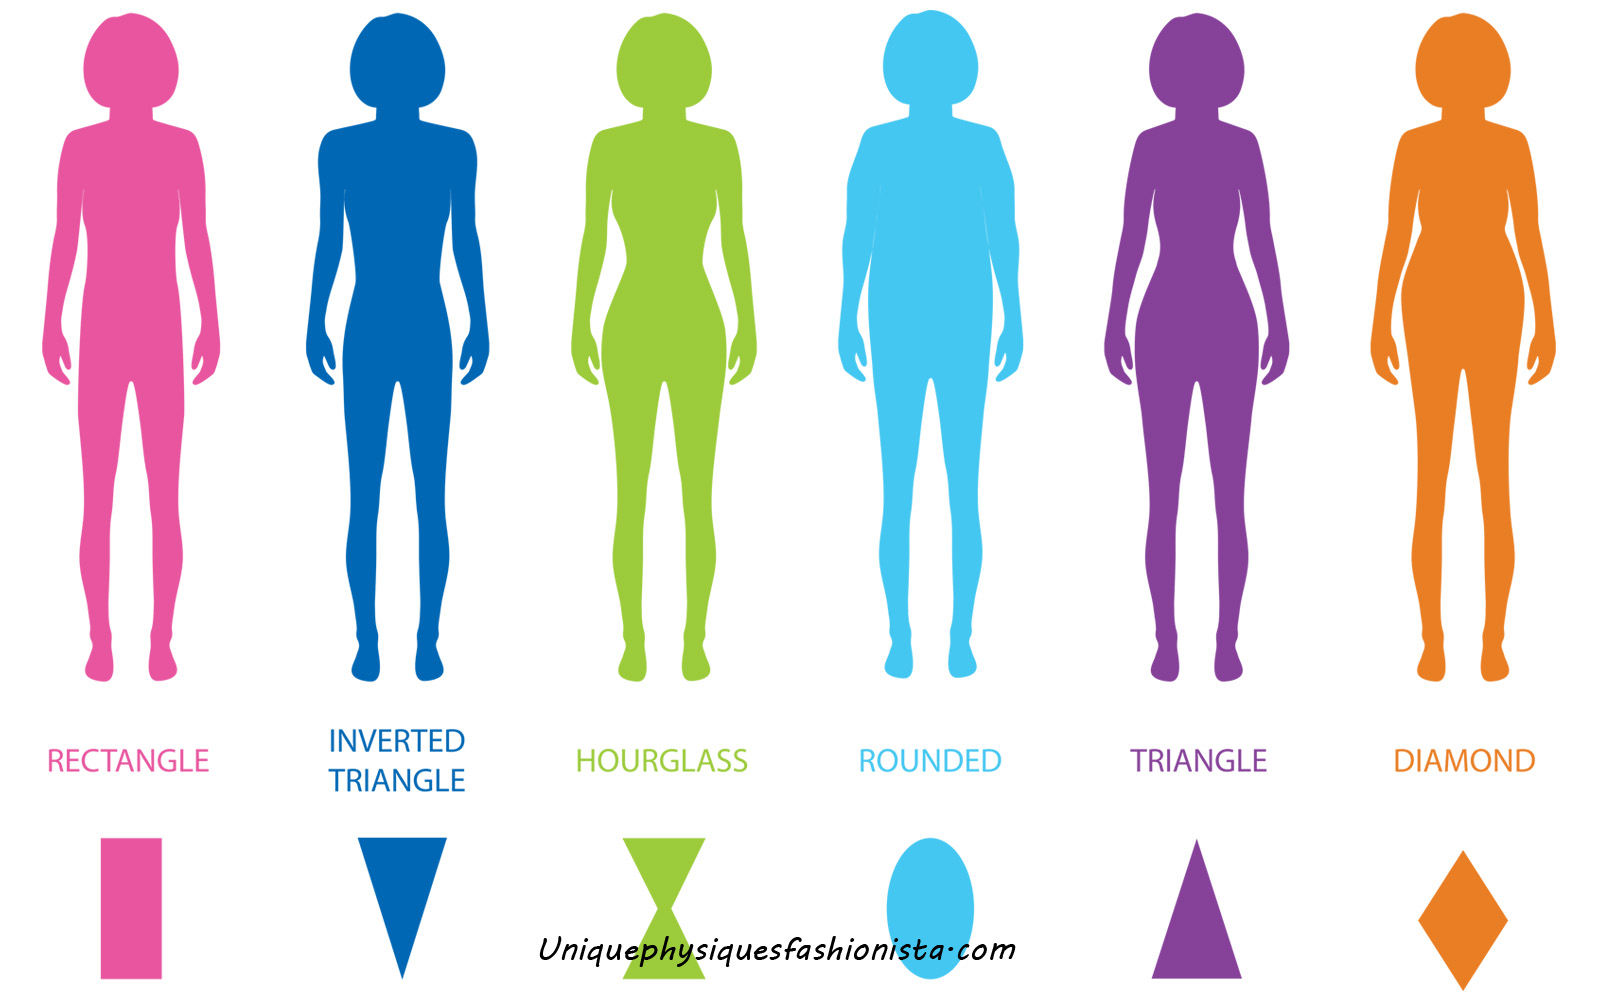 Know your body shape